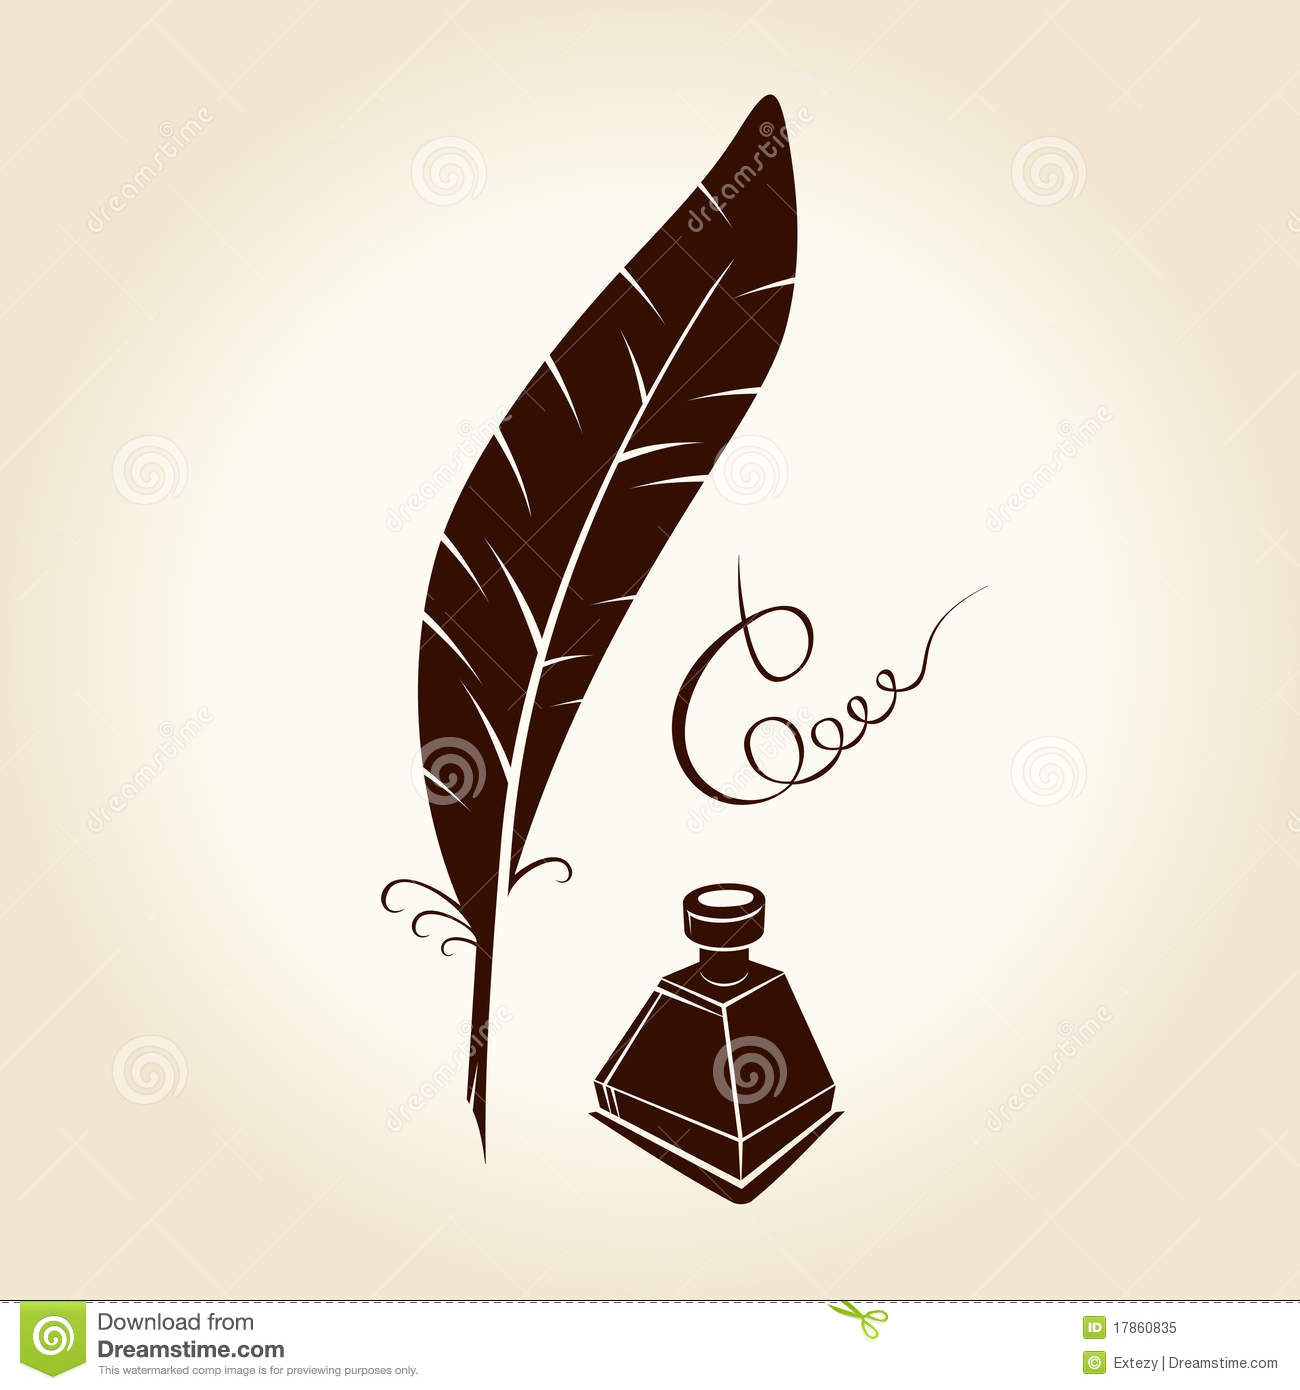 Quill And Inkwell Drawing Feather Pen Ink Callig...